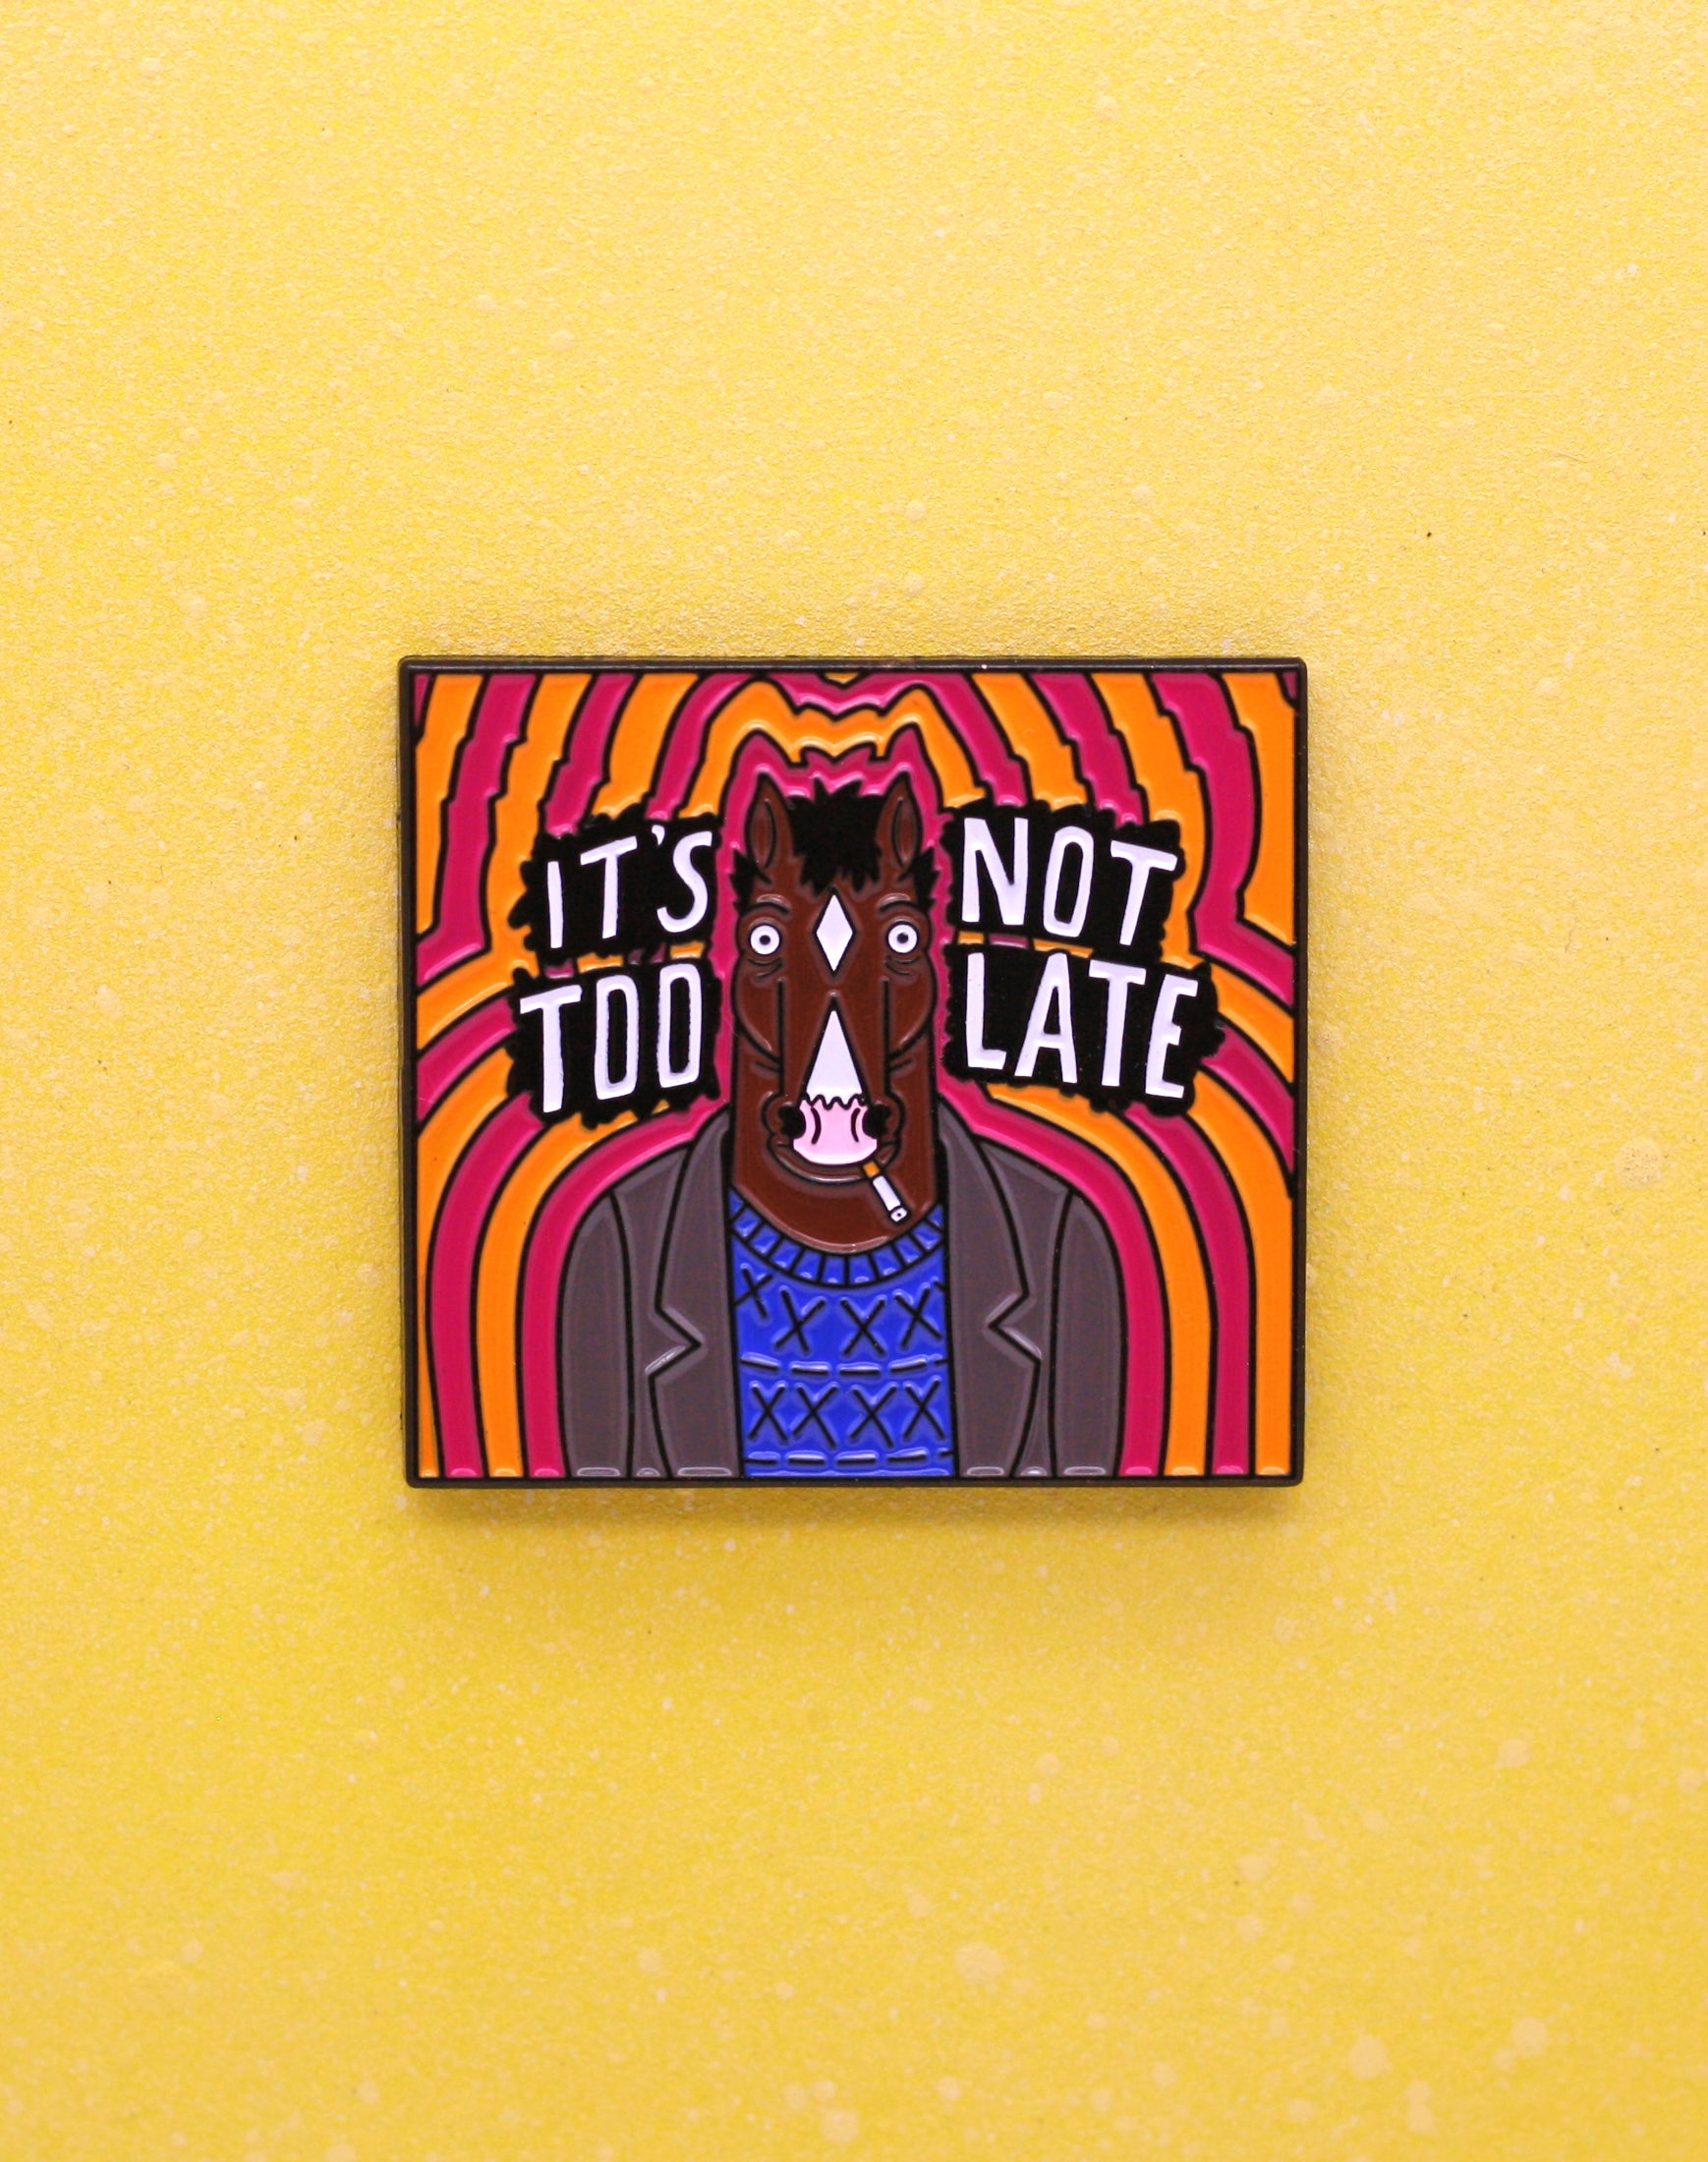 """It's Not Too Late"" Bojack Horseman Enamel Pin Badge on Yellow"